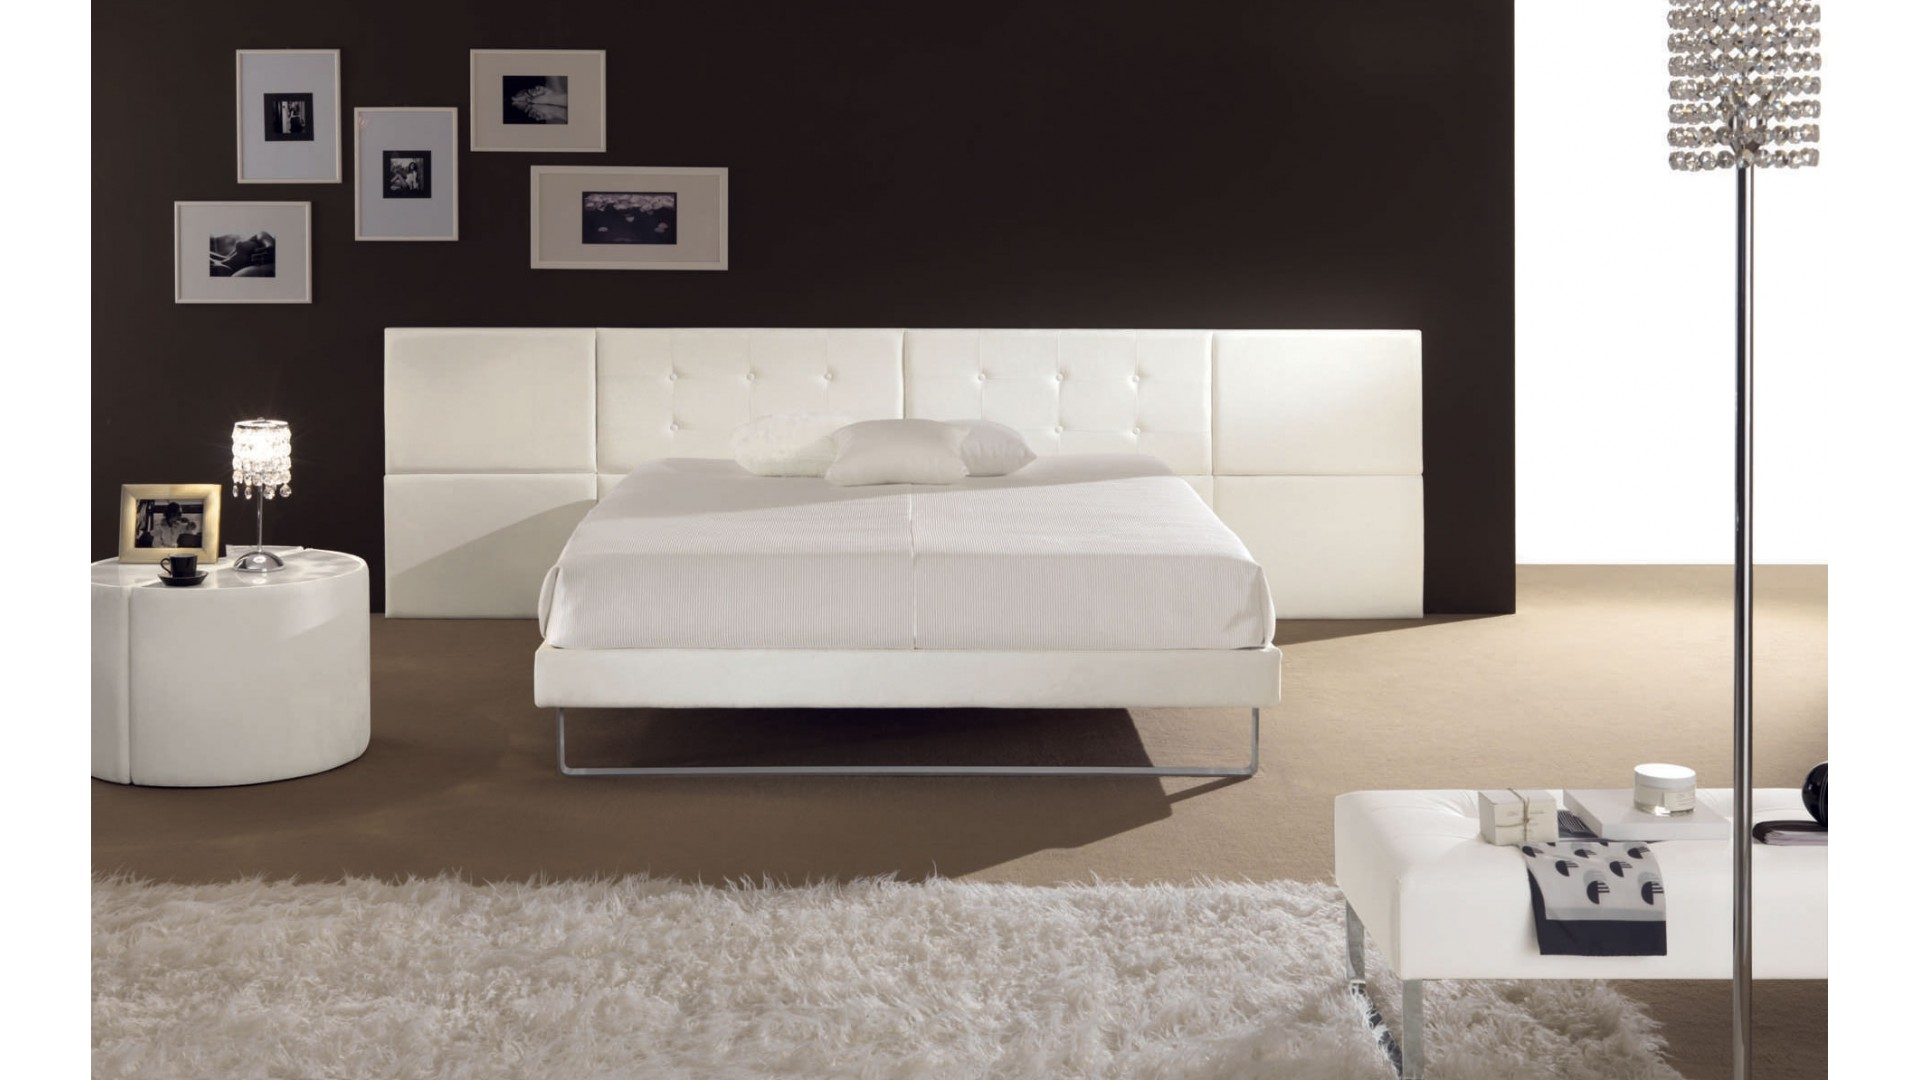 lit 2 places arkom avec t te de lit majestueuse piermaria so nuit. Black Bedroom Furniture Sets. Home Design Ideas